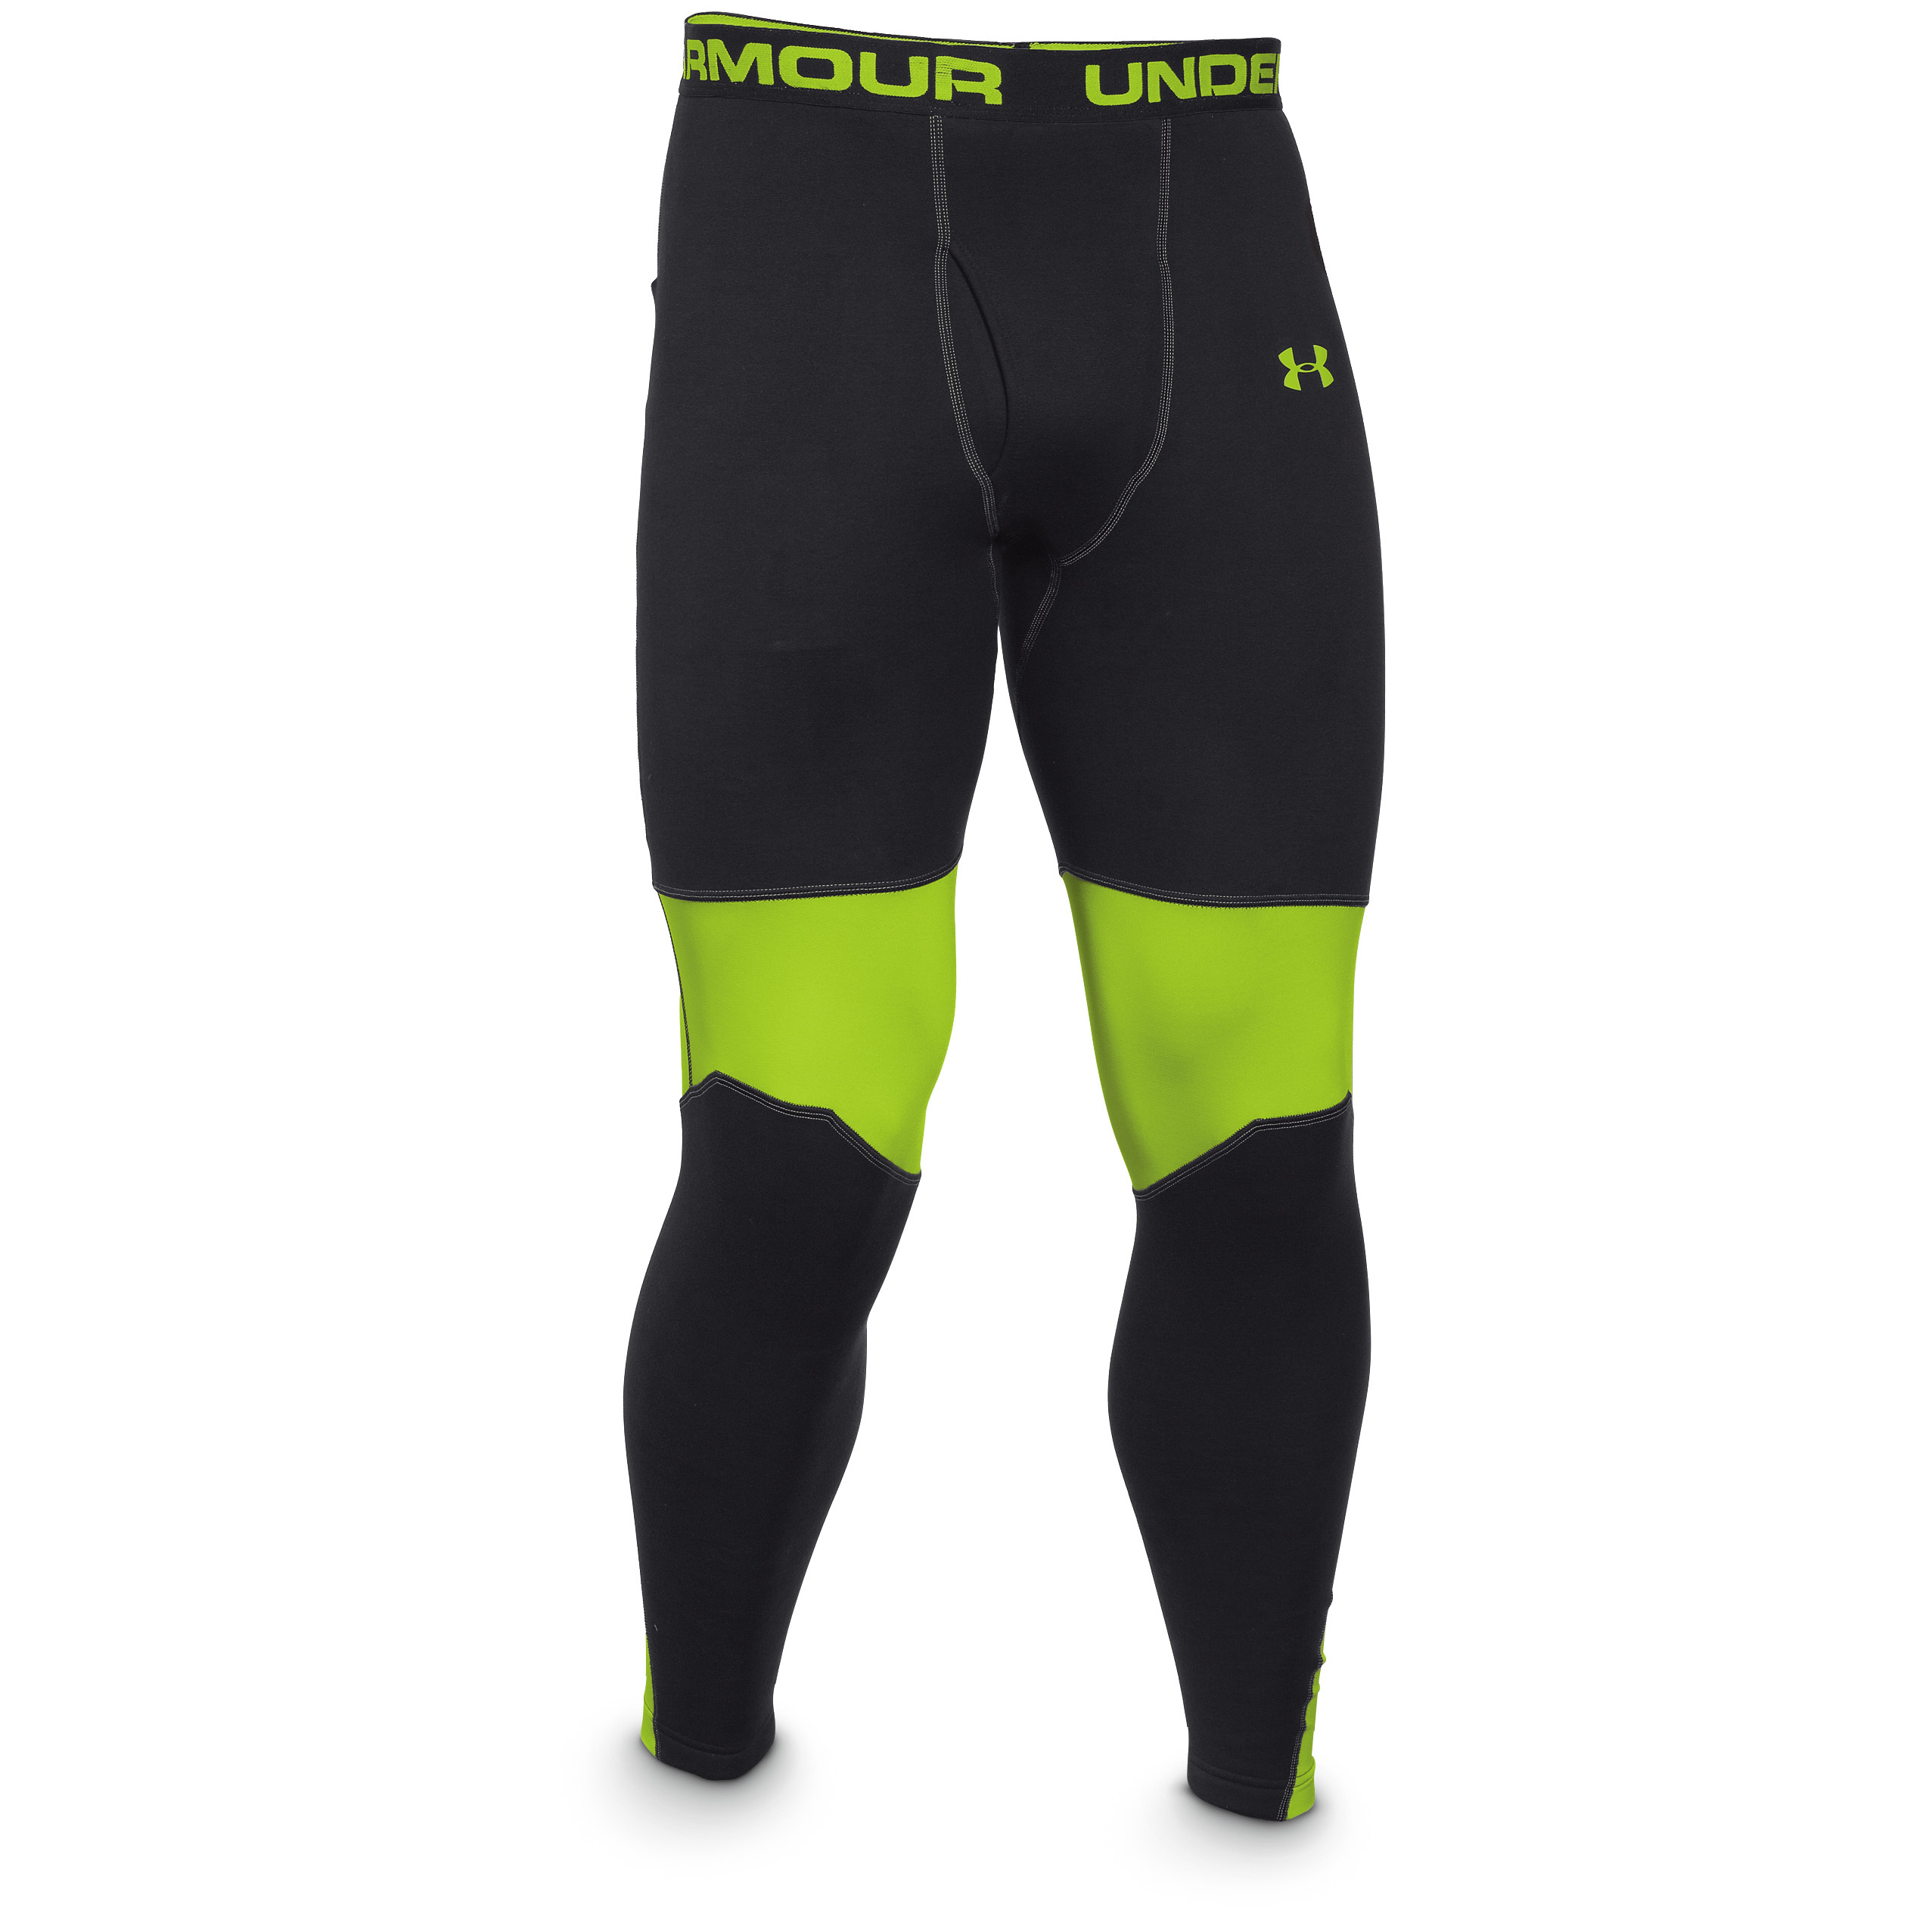 e666b5044e071 Under Armour Extreme Base Bottoms with UA Scent Control. Your first layer  of defense against